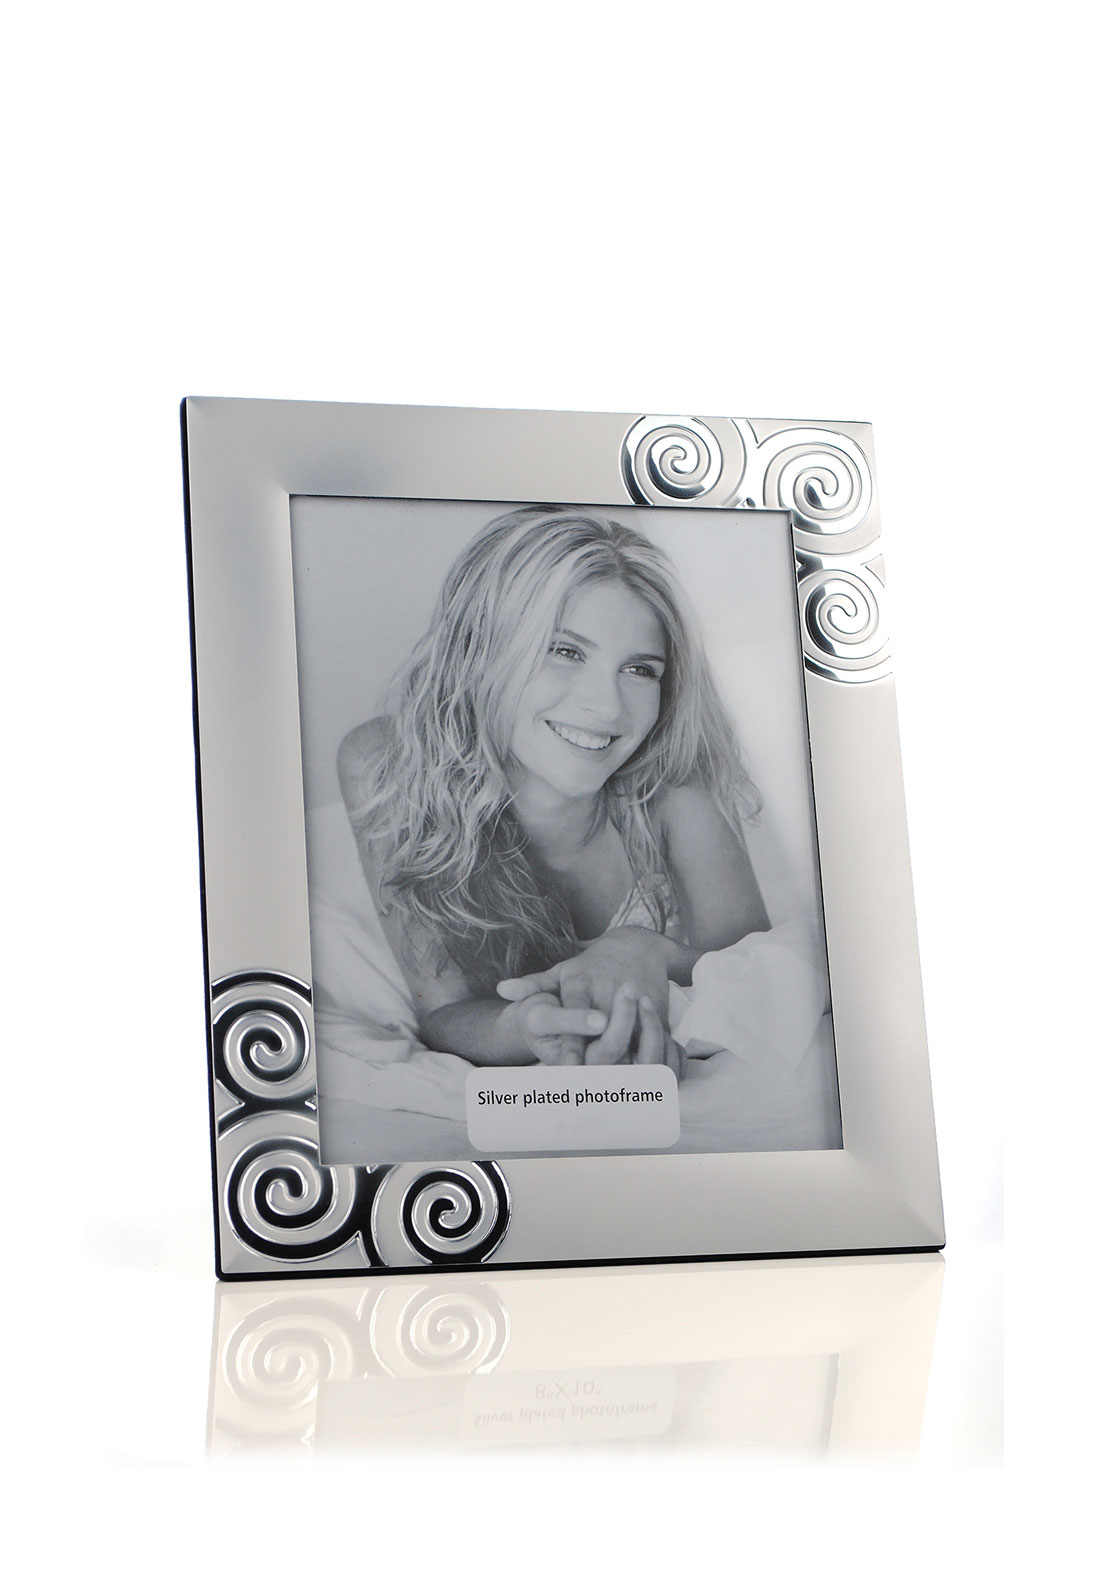 Frame It Silver Plated Photo Frame, 8 x 6 inches